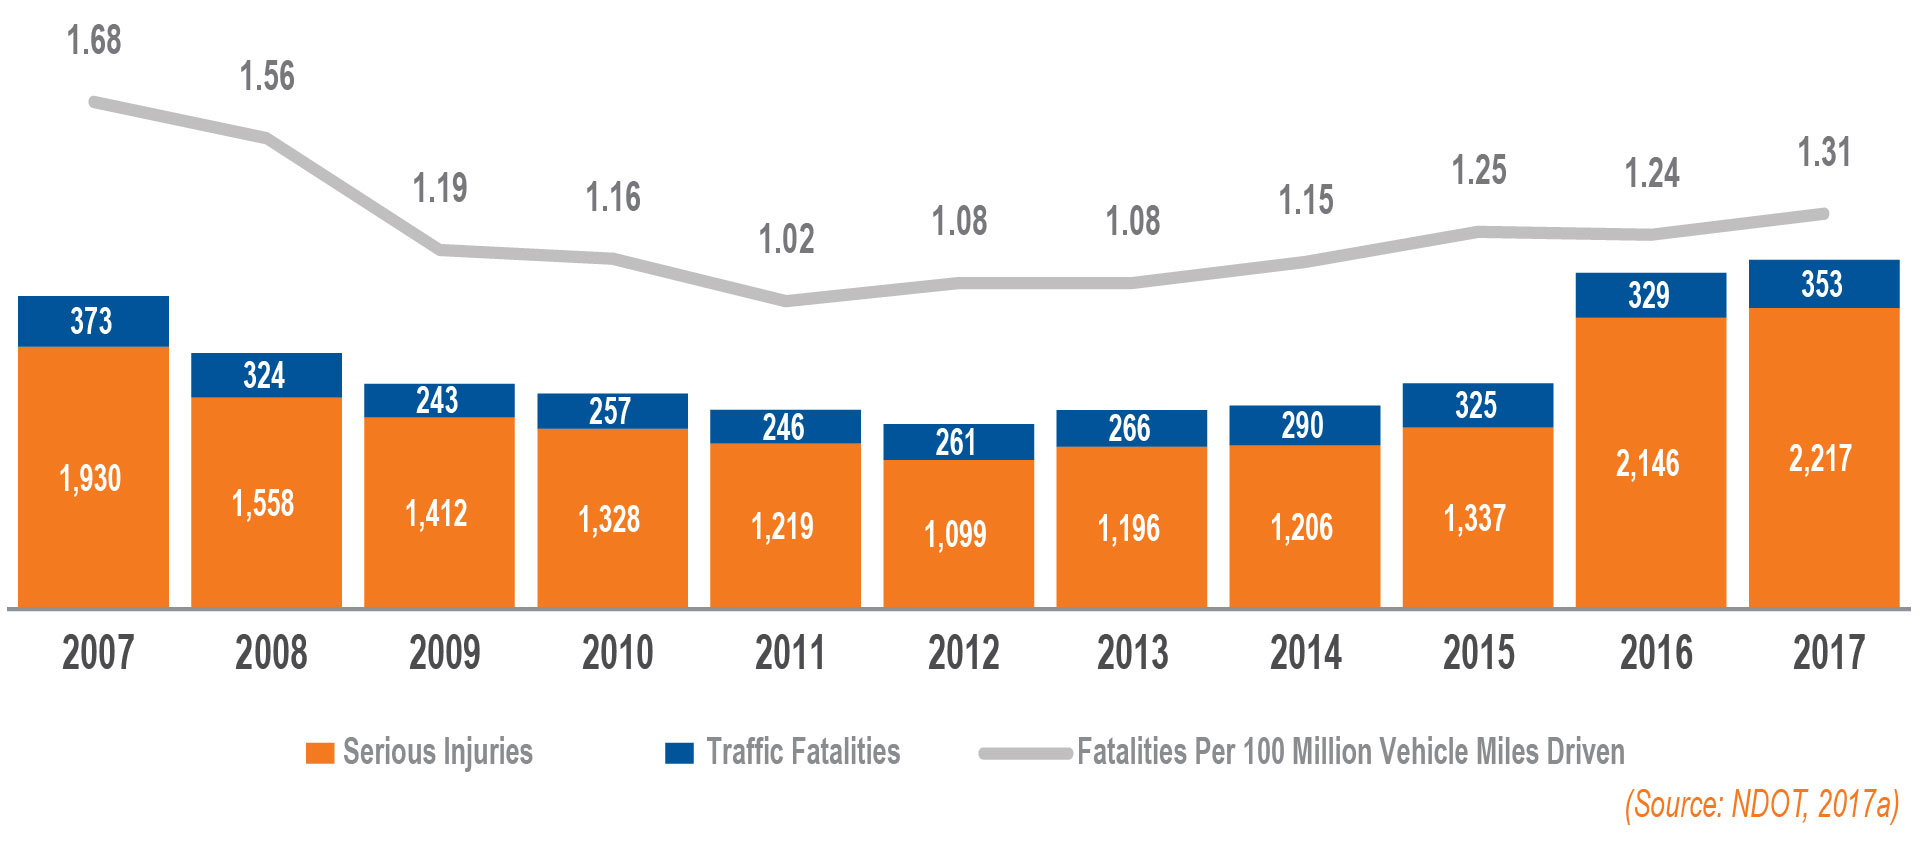 A chart depicting traffic injuries and fatalities over 10 years from 2007 to 2017